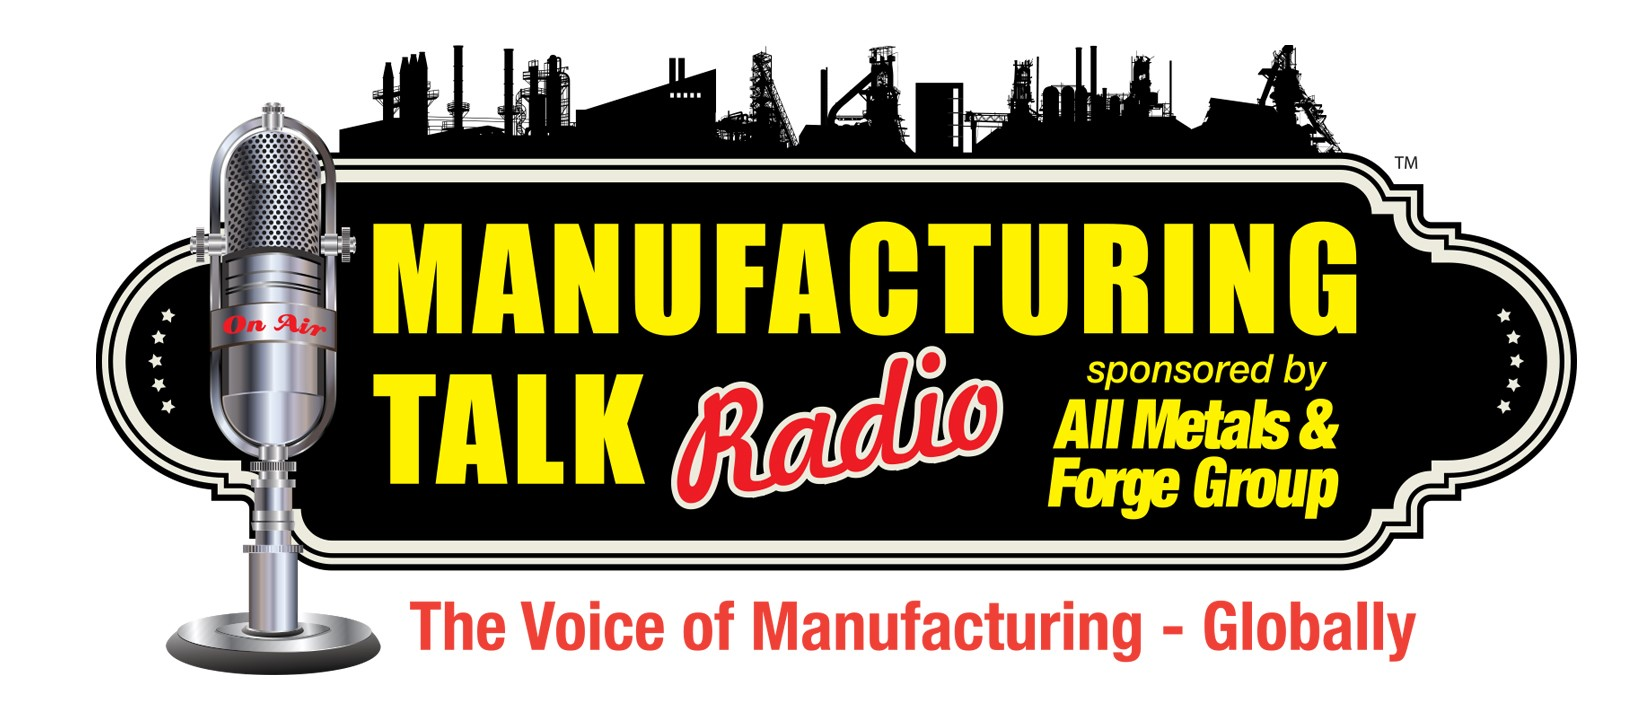 Manufacturing Talk Radio Hosts Lew Weiss and Tim Grady Discuss Manufacturing and Economy in 2019 Year of Review